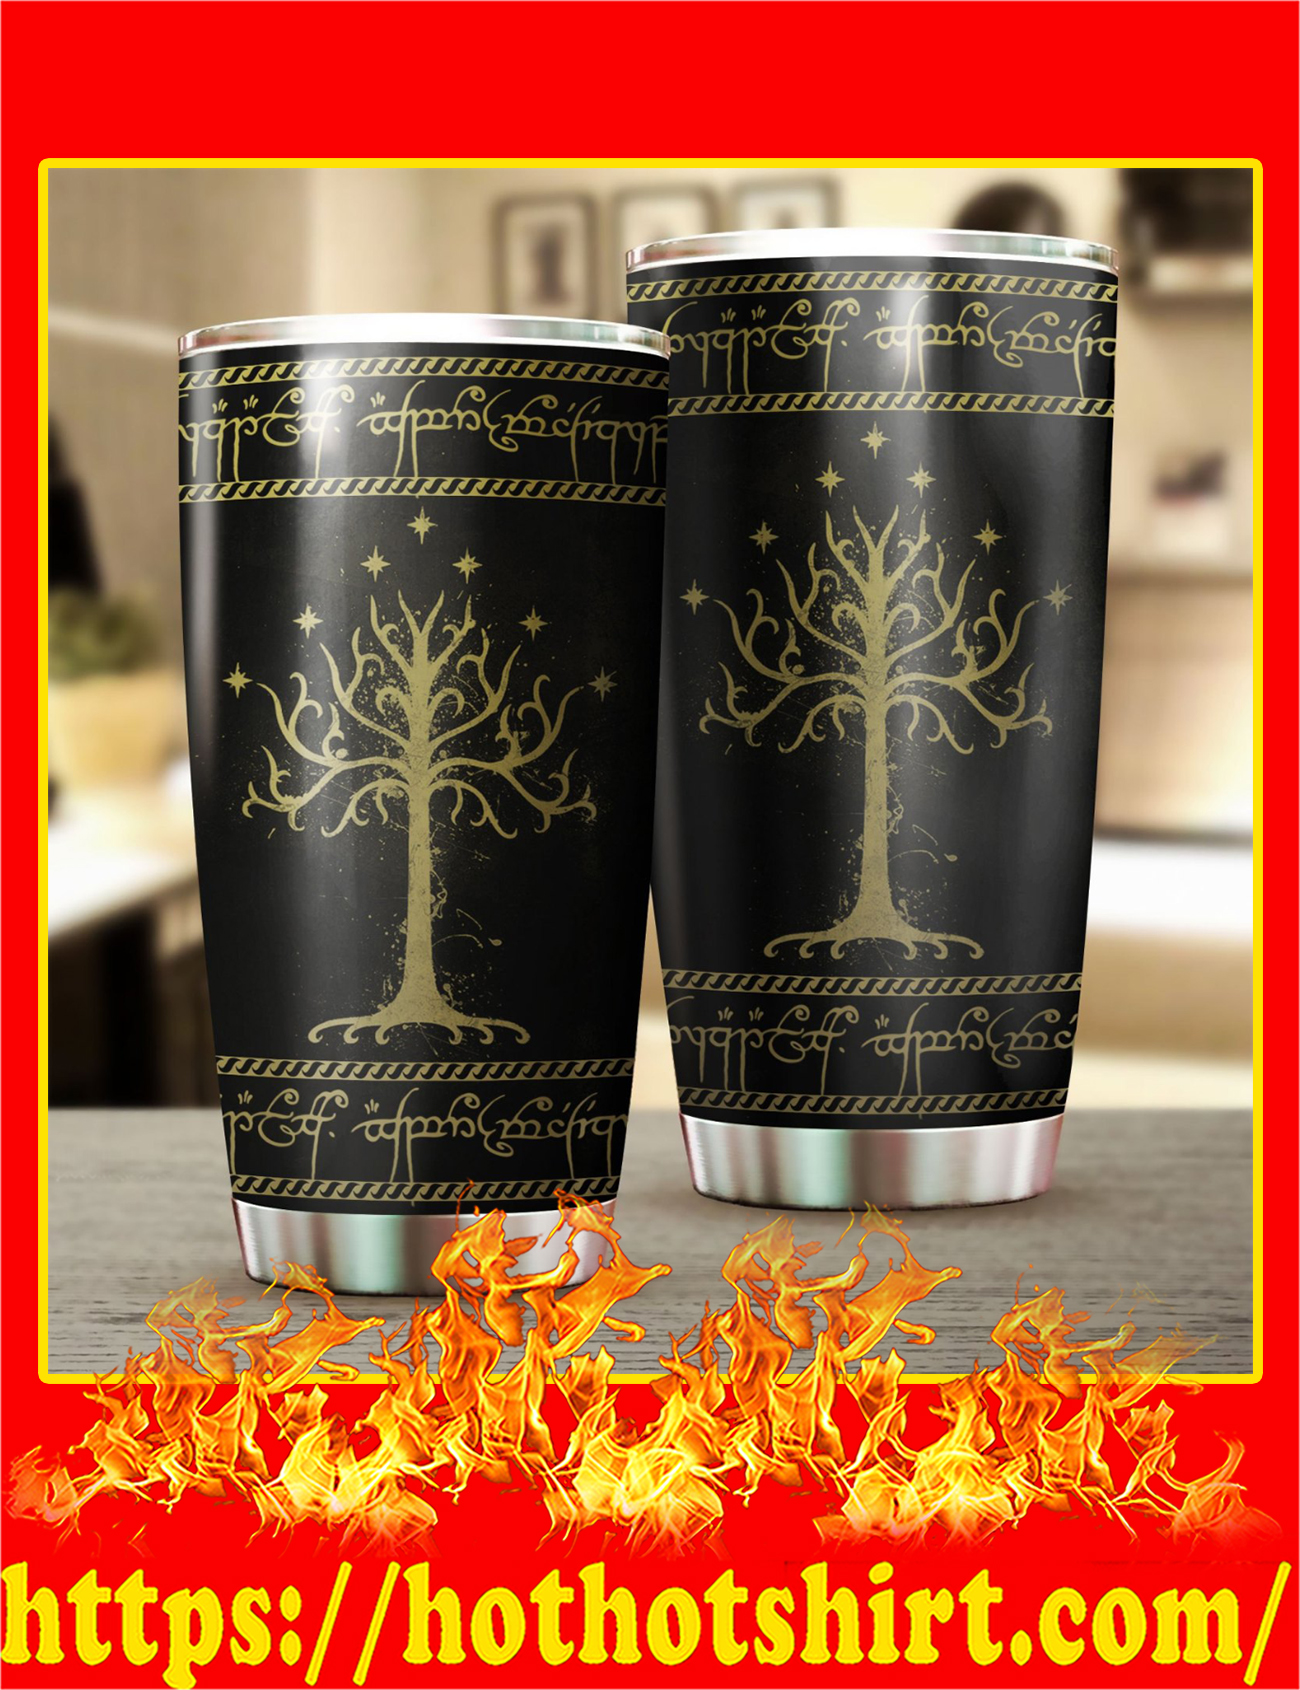 White Tree Of Gondor Art Stainless Steel Tumbler - Pic 1